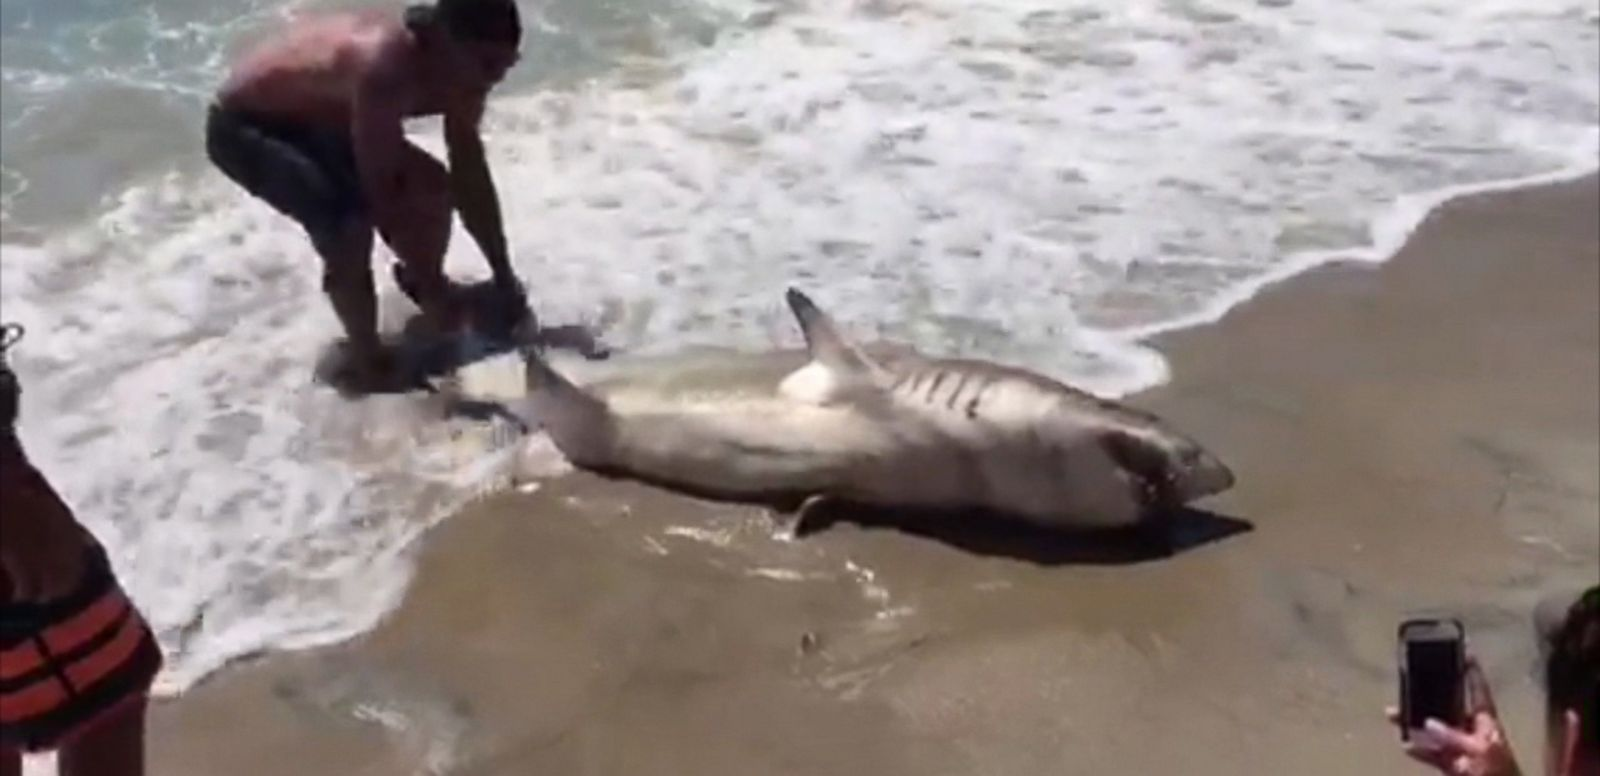 New jersey teen reels in estimated 200 pound shark abc news for Shark fishing nj